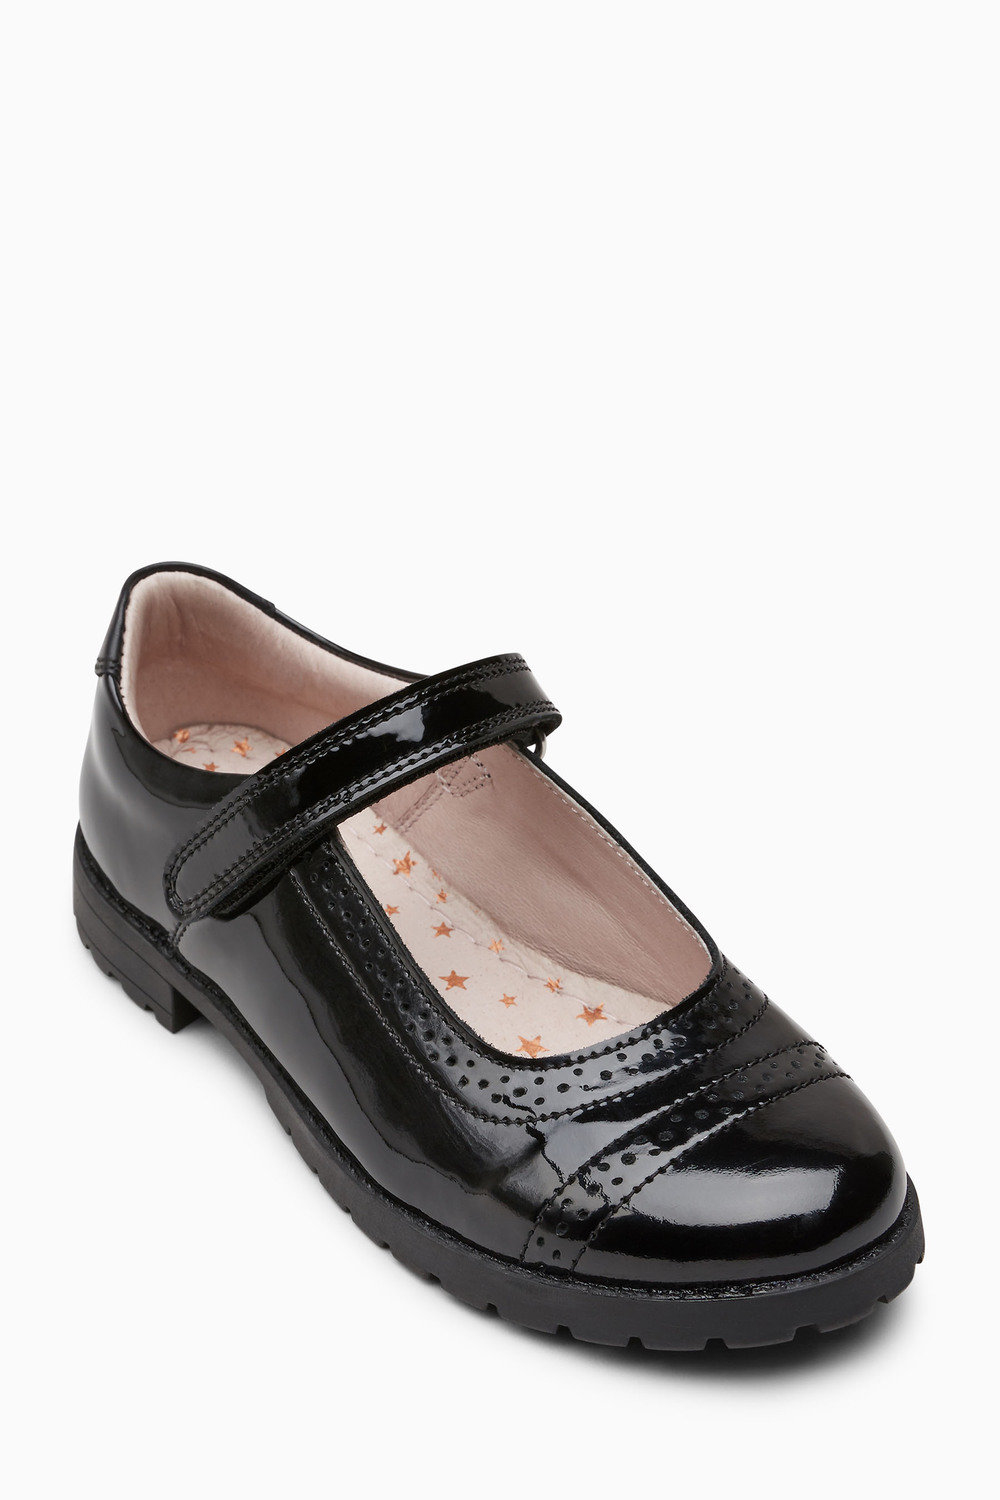 03ab90f848c Next Leather Brogue Mary Jane Shoes (Older) Online